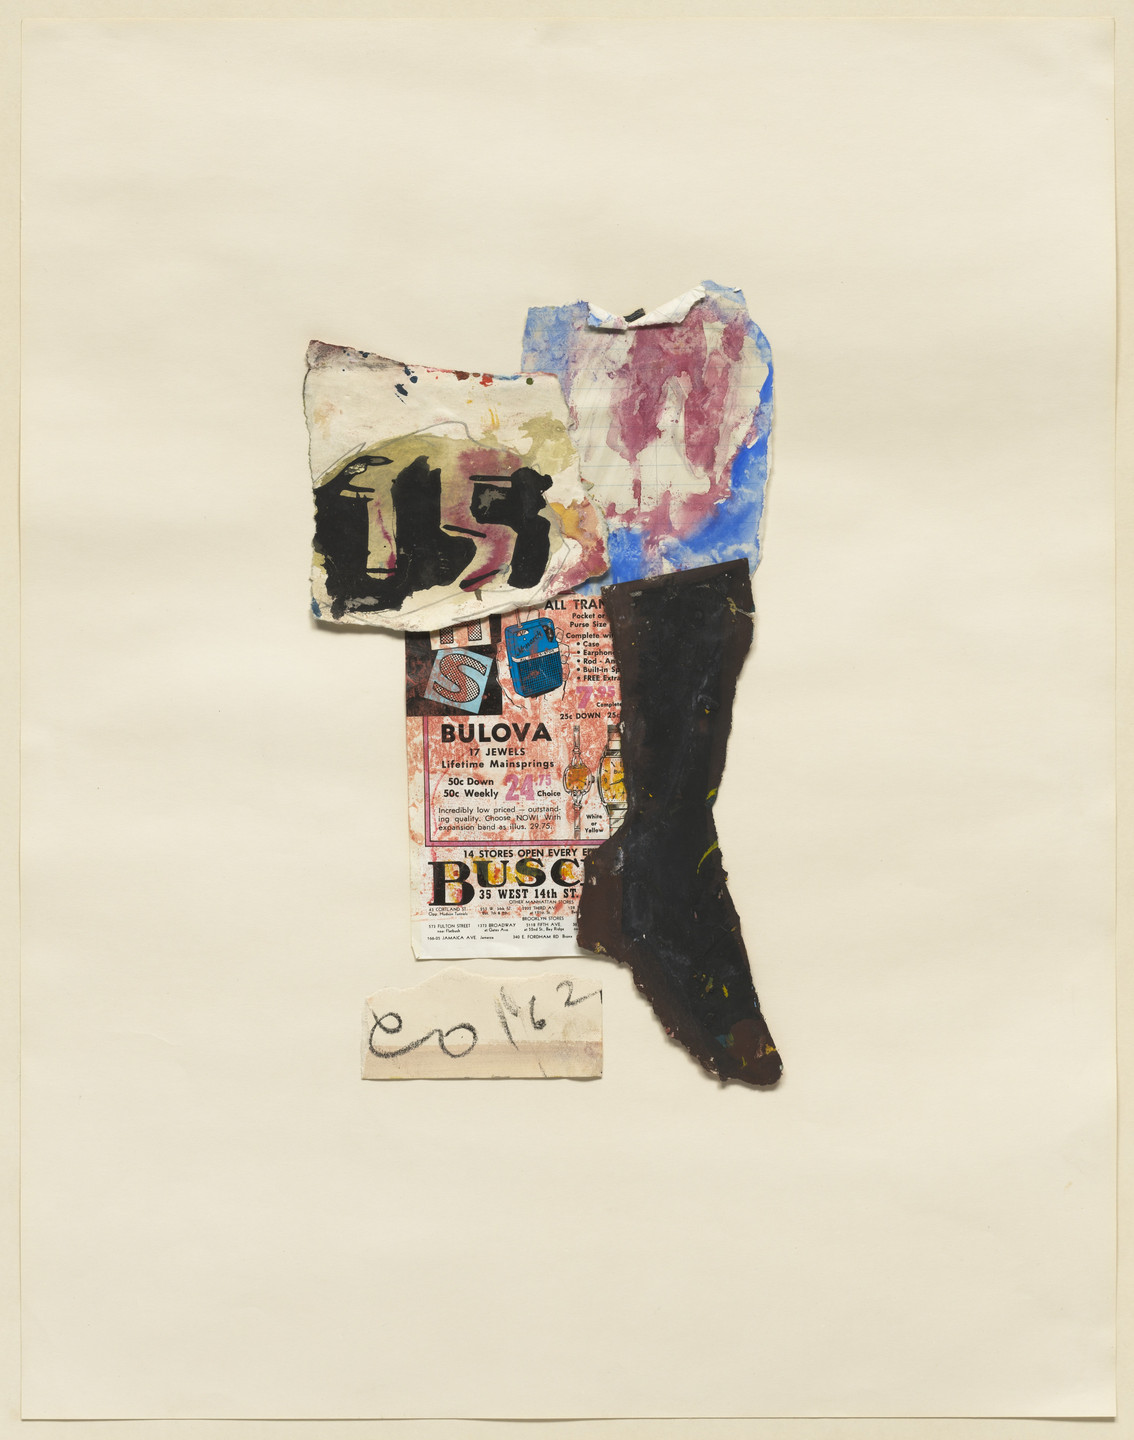 Claes Oldenburg. A Sock and 15 Cents (Studies for Store Objects). 1961, dated 1962